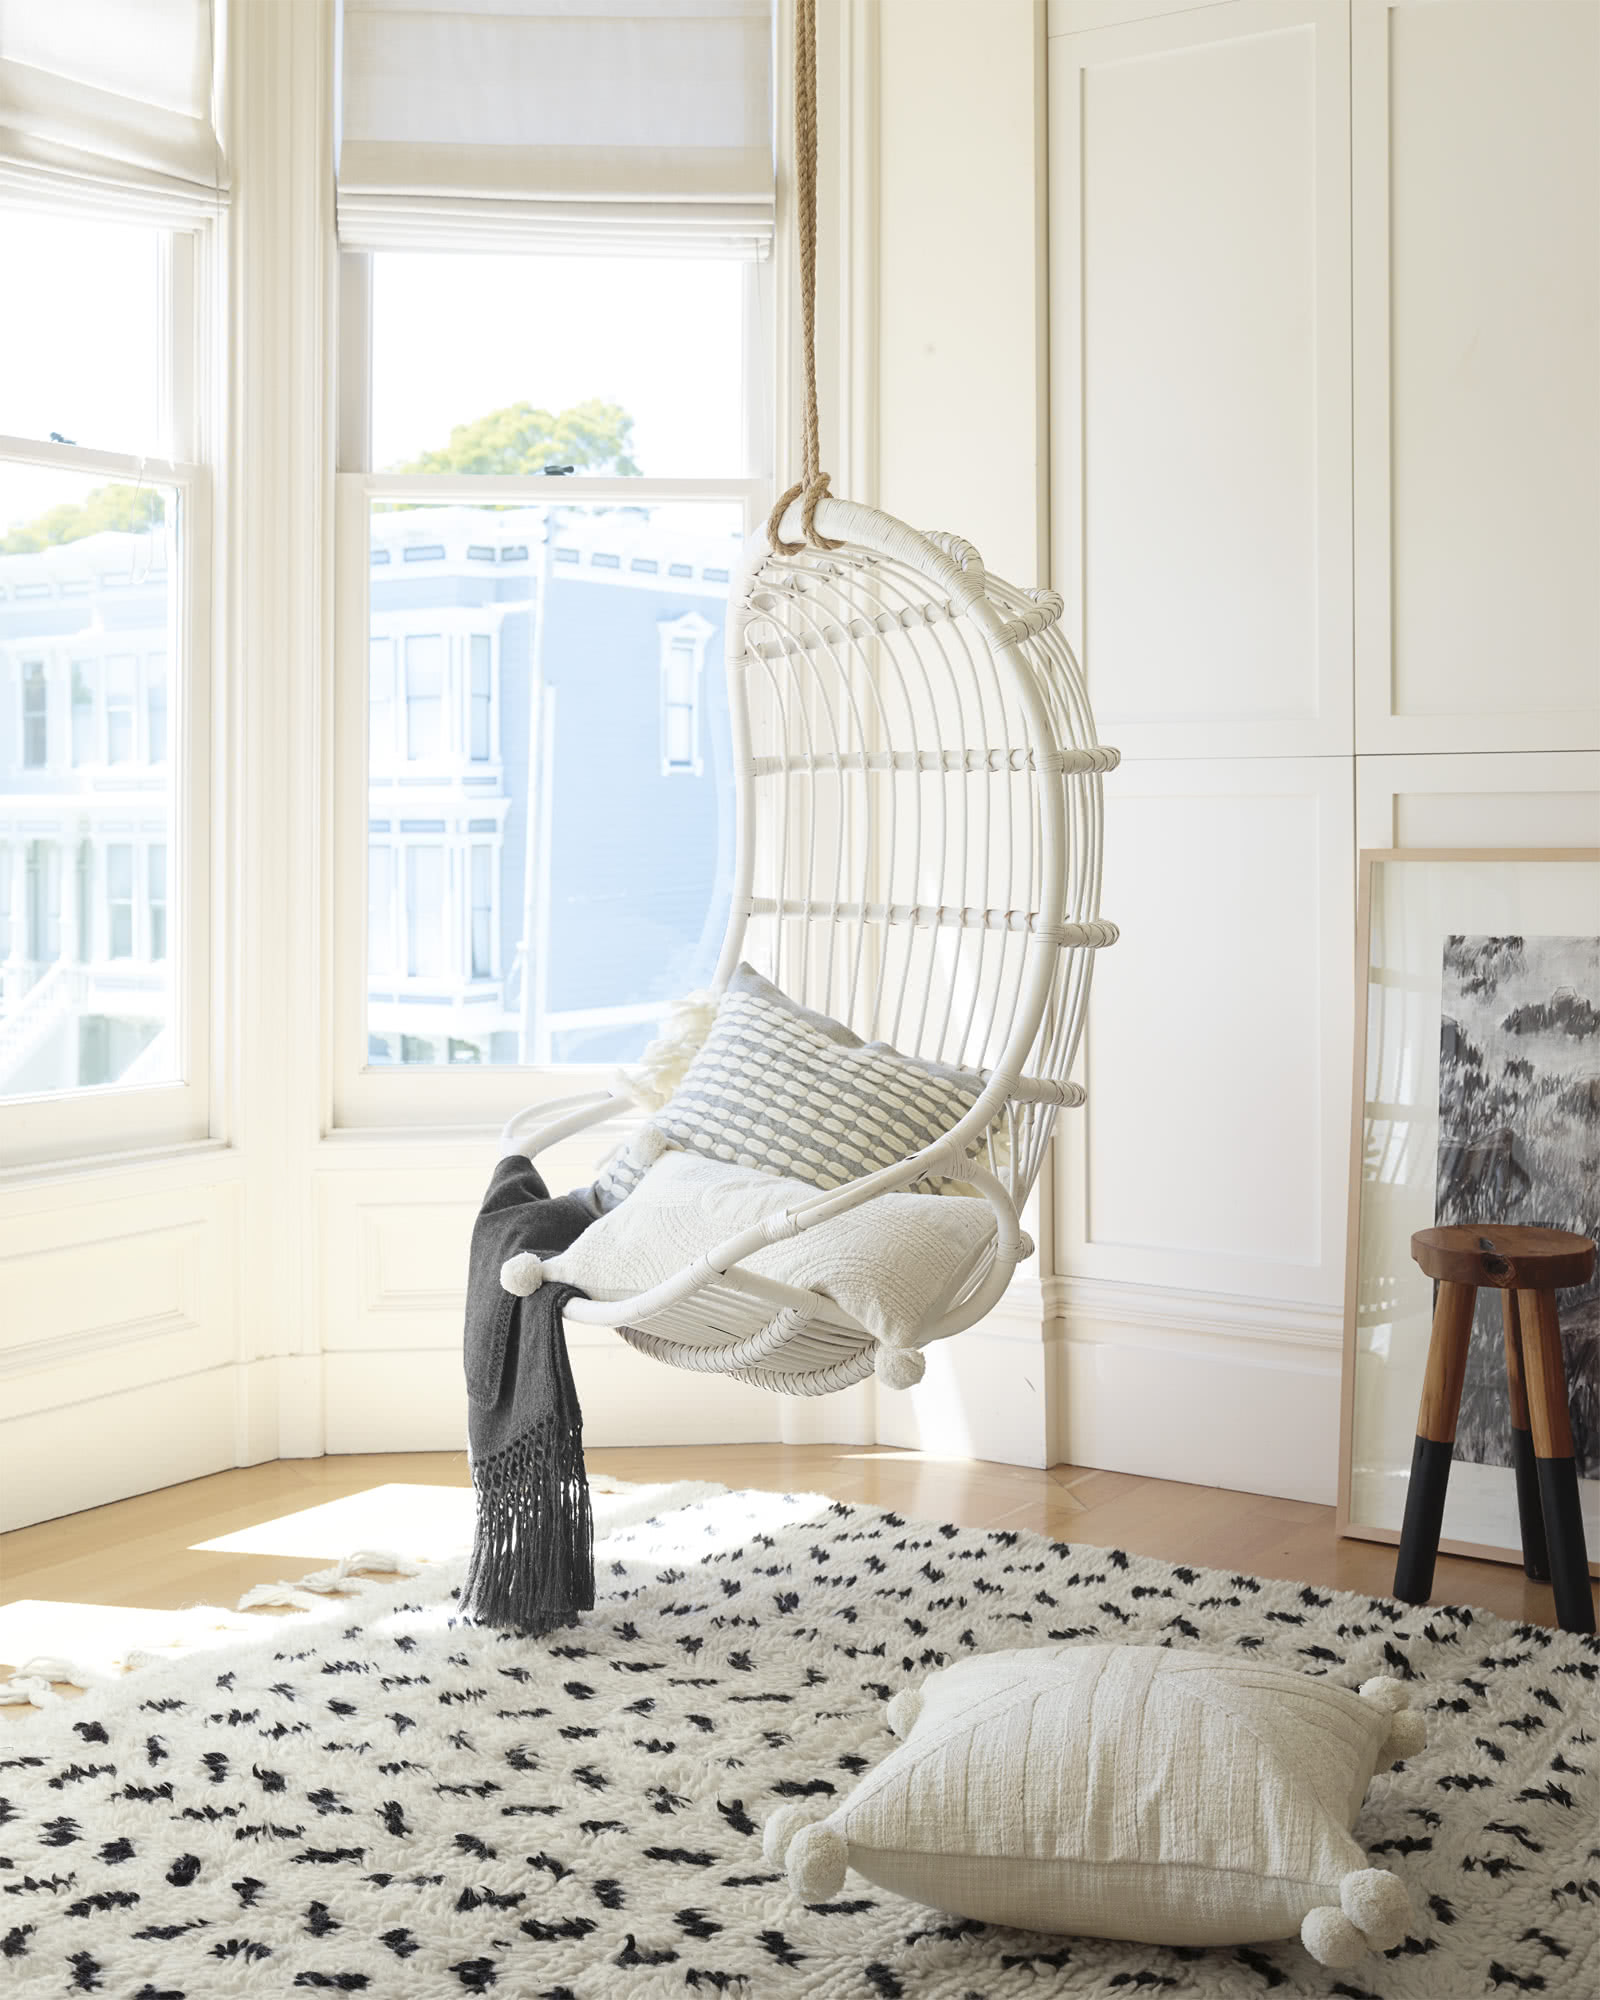 Chair_Hanging_white-with-blanket-bright-color-suitable-for-hanging-room